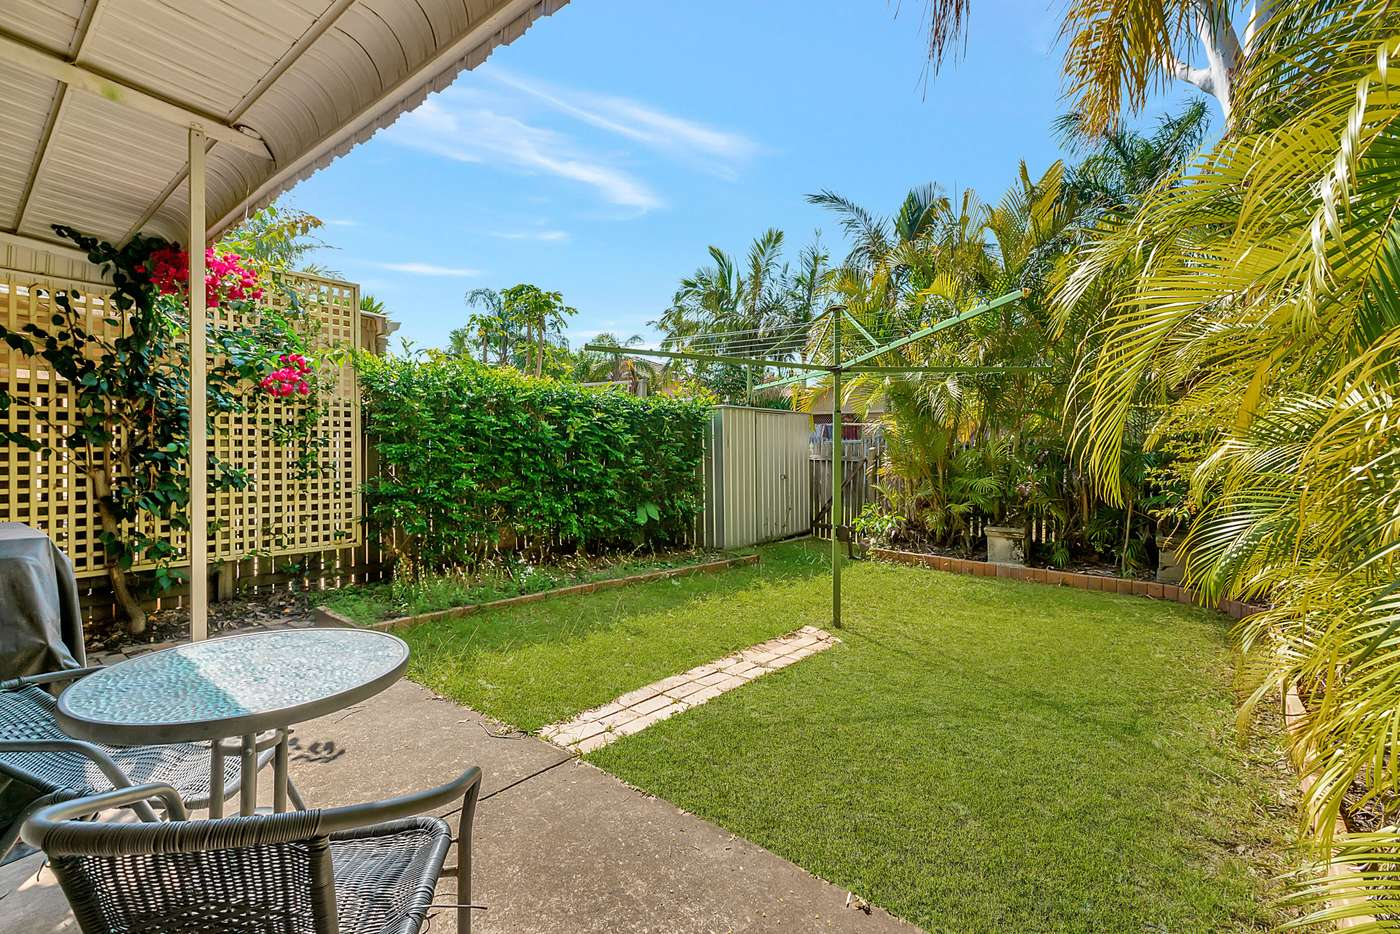 Main view of Homely townhouse listing, 127/170 Central Street, Labrador, QLD 4215